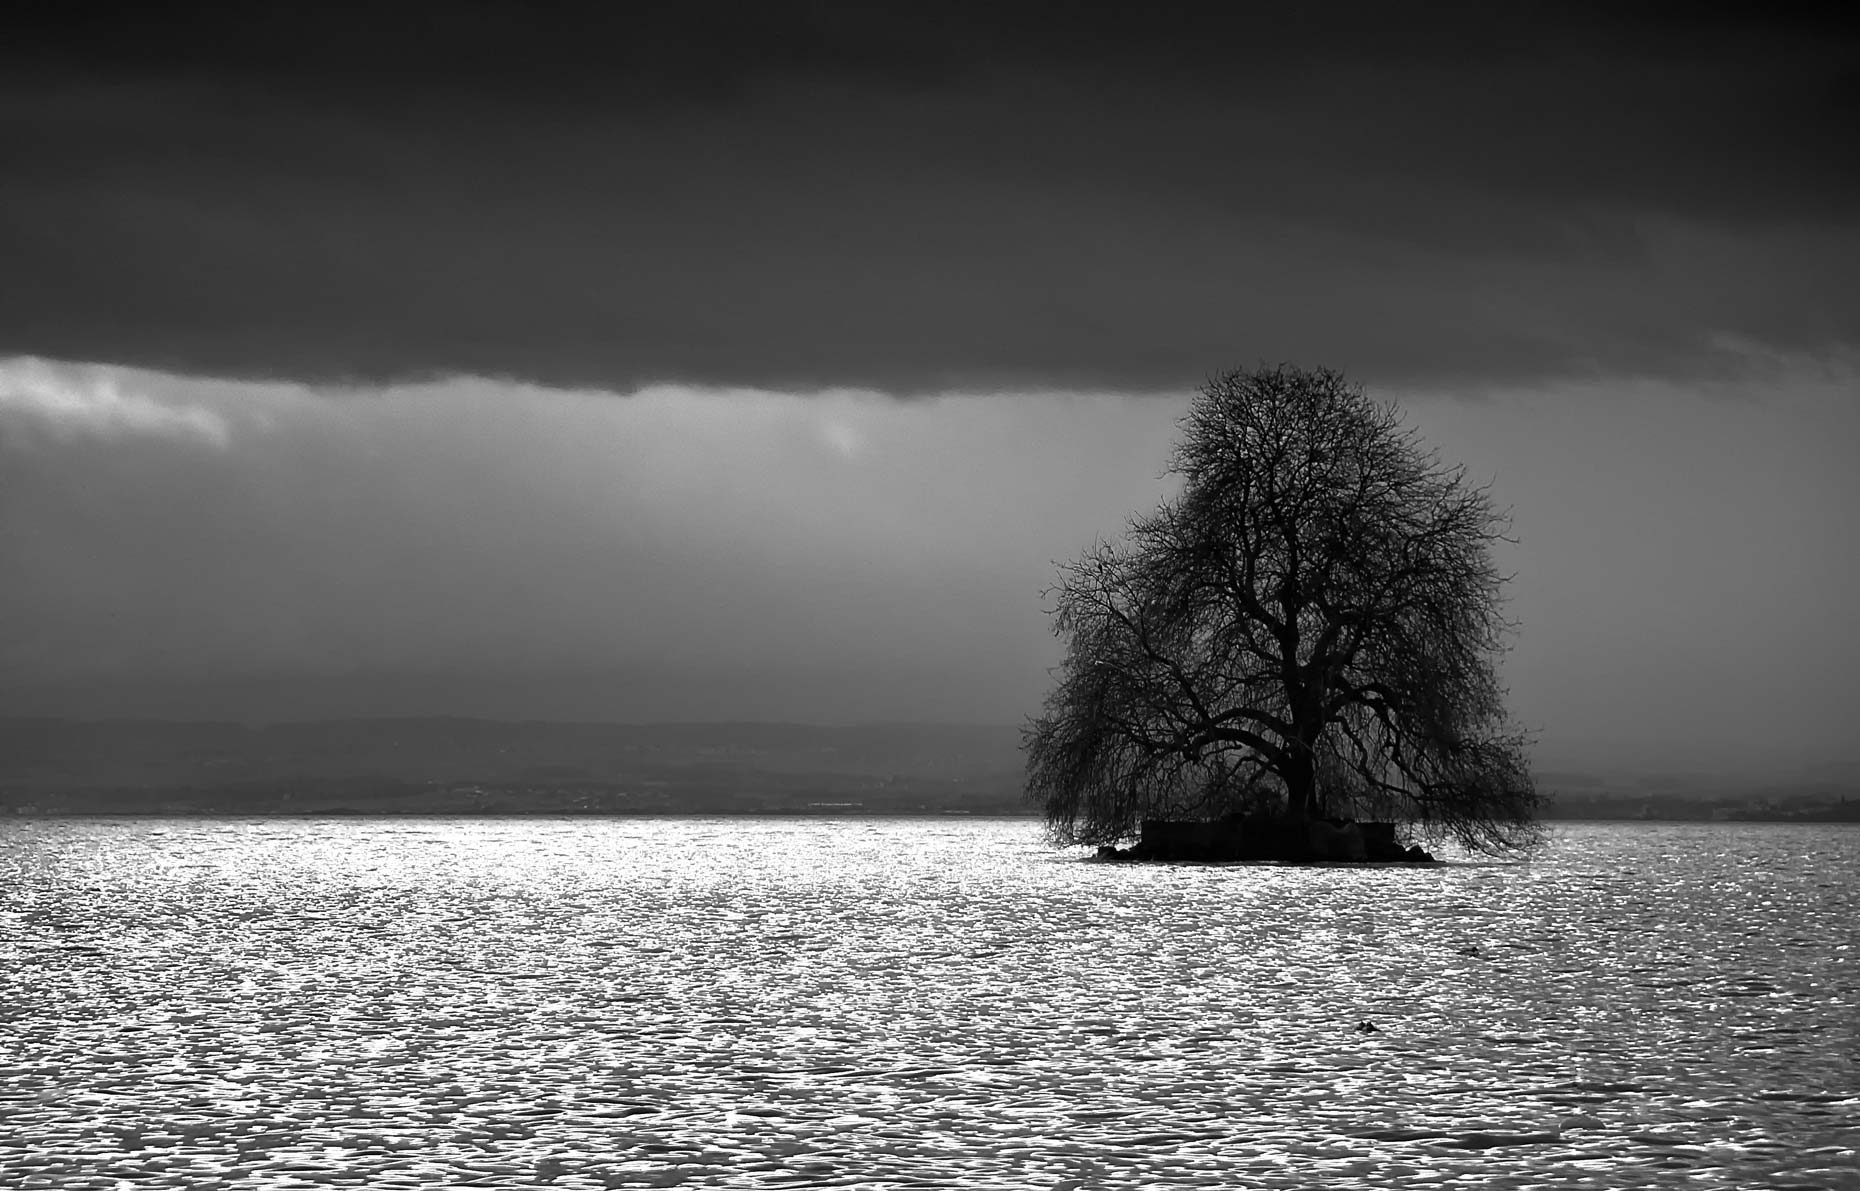 Switzerland-Photos-Tree-of-Hope-Laria-Saunders.jpg